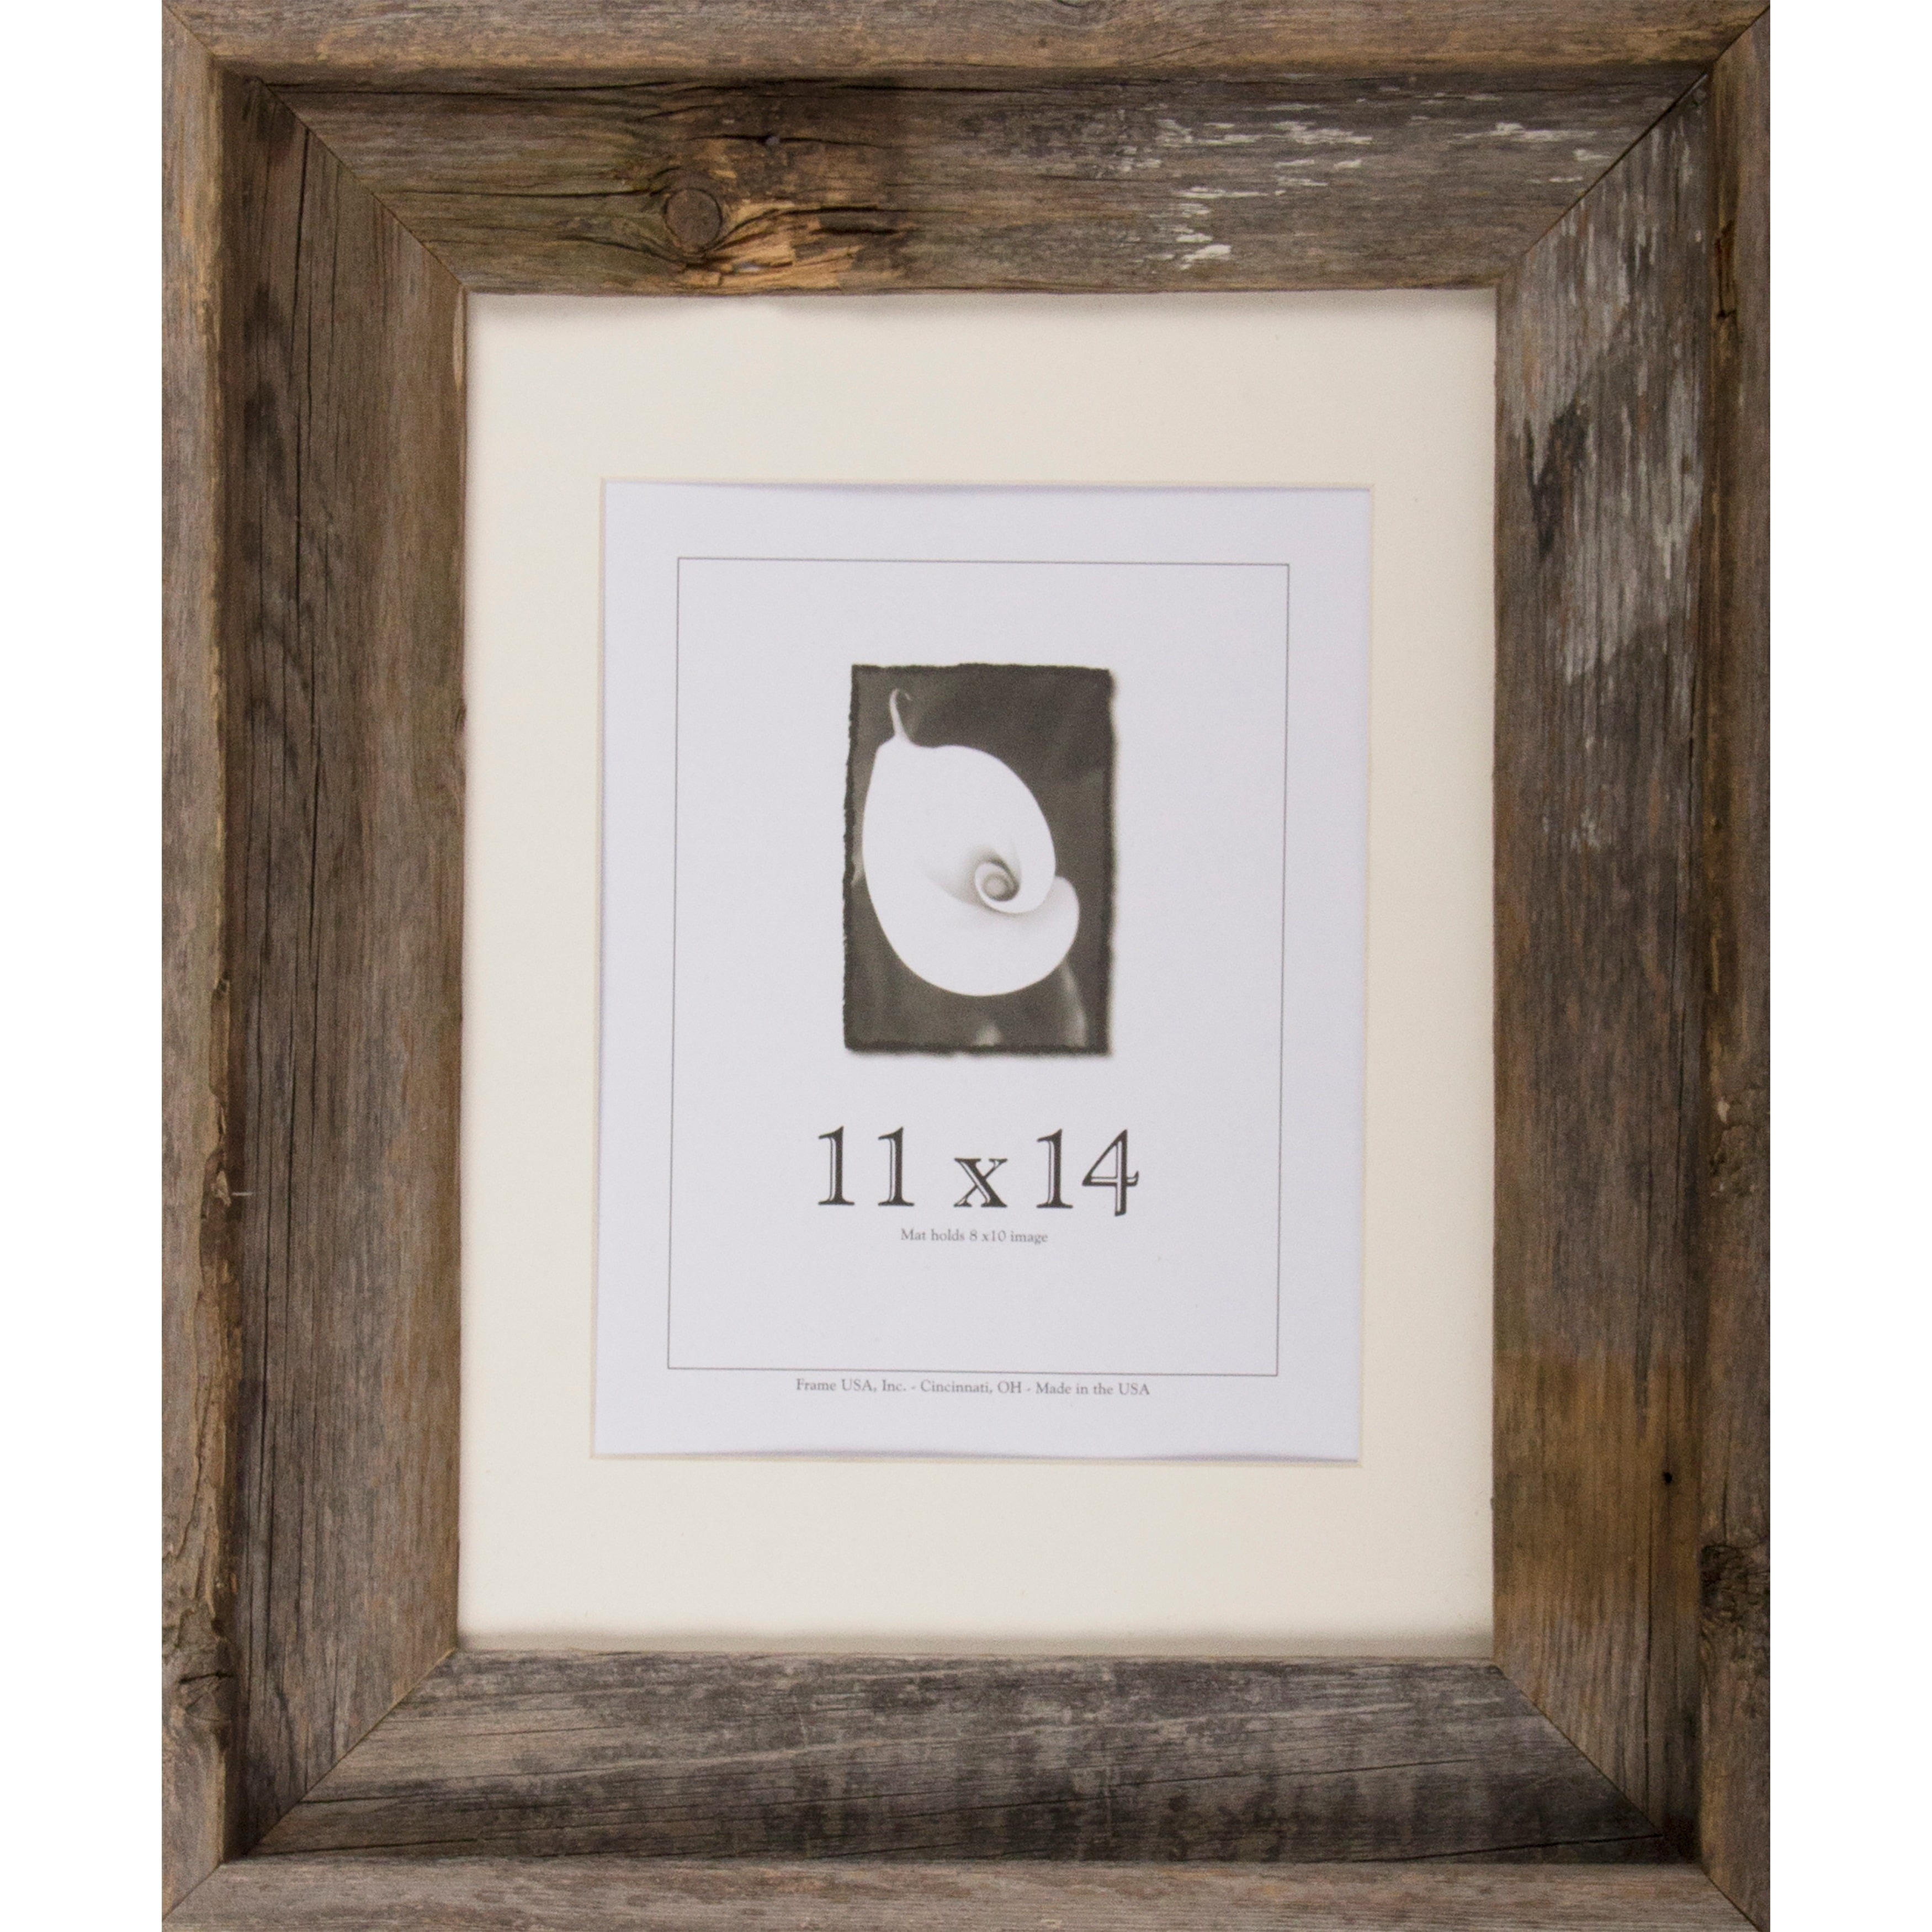 Shop Frame USA Barnwood Signature Series Grey/White Wood Picture ...